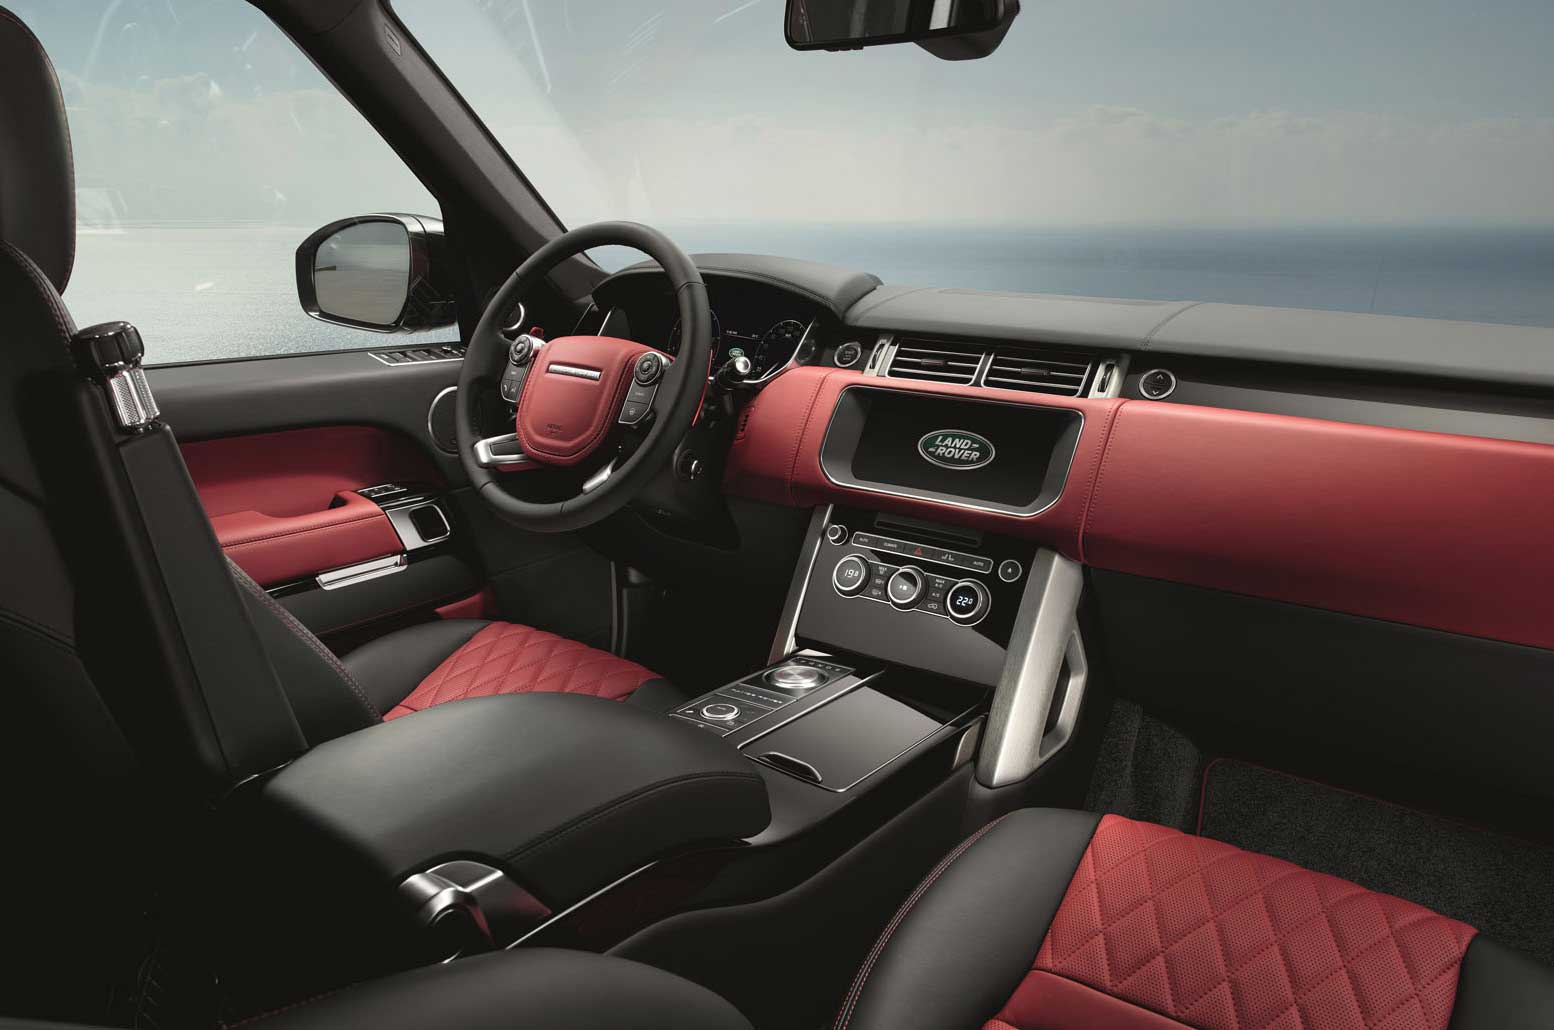 2017 Range Rover Revealed With Upgraded Tech